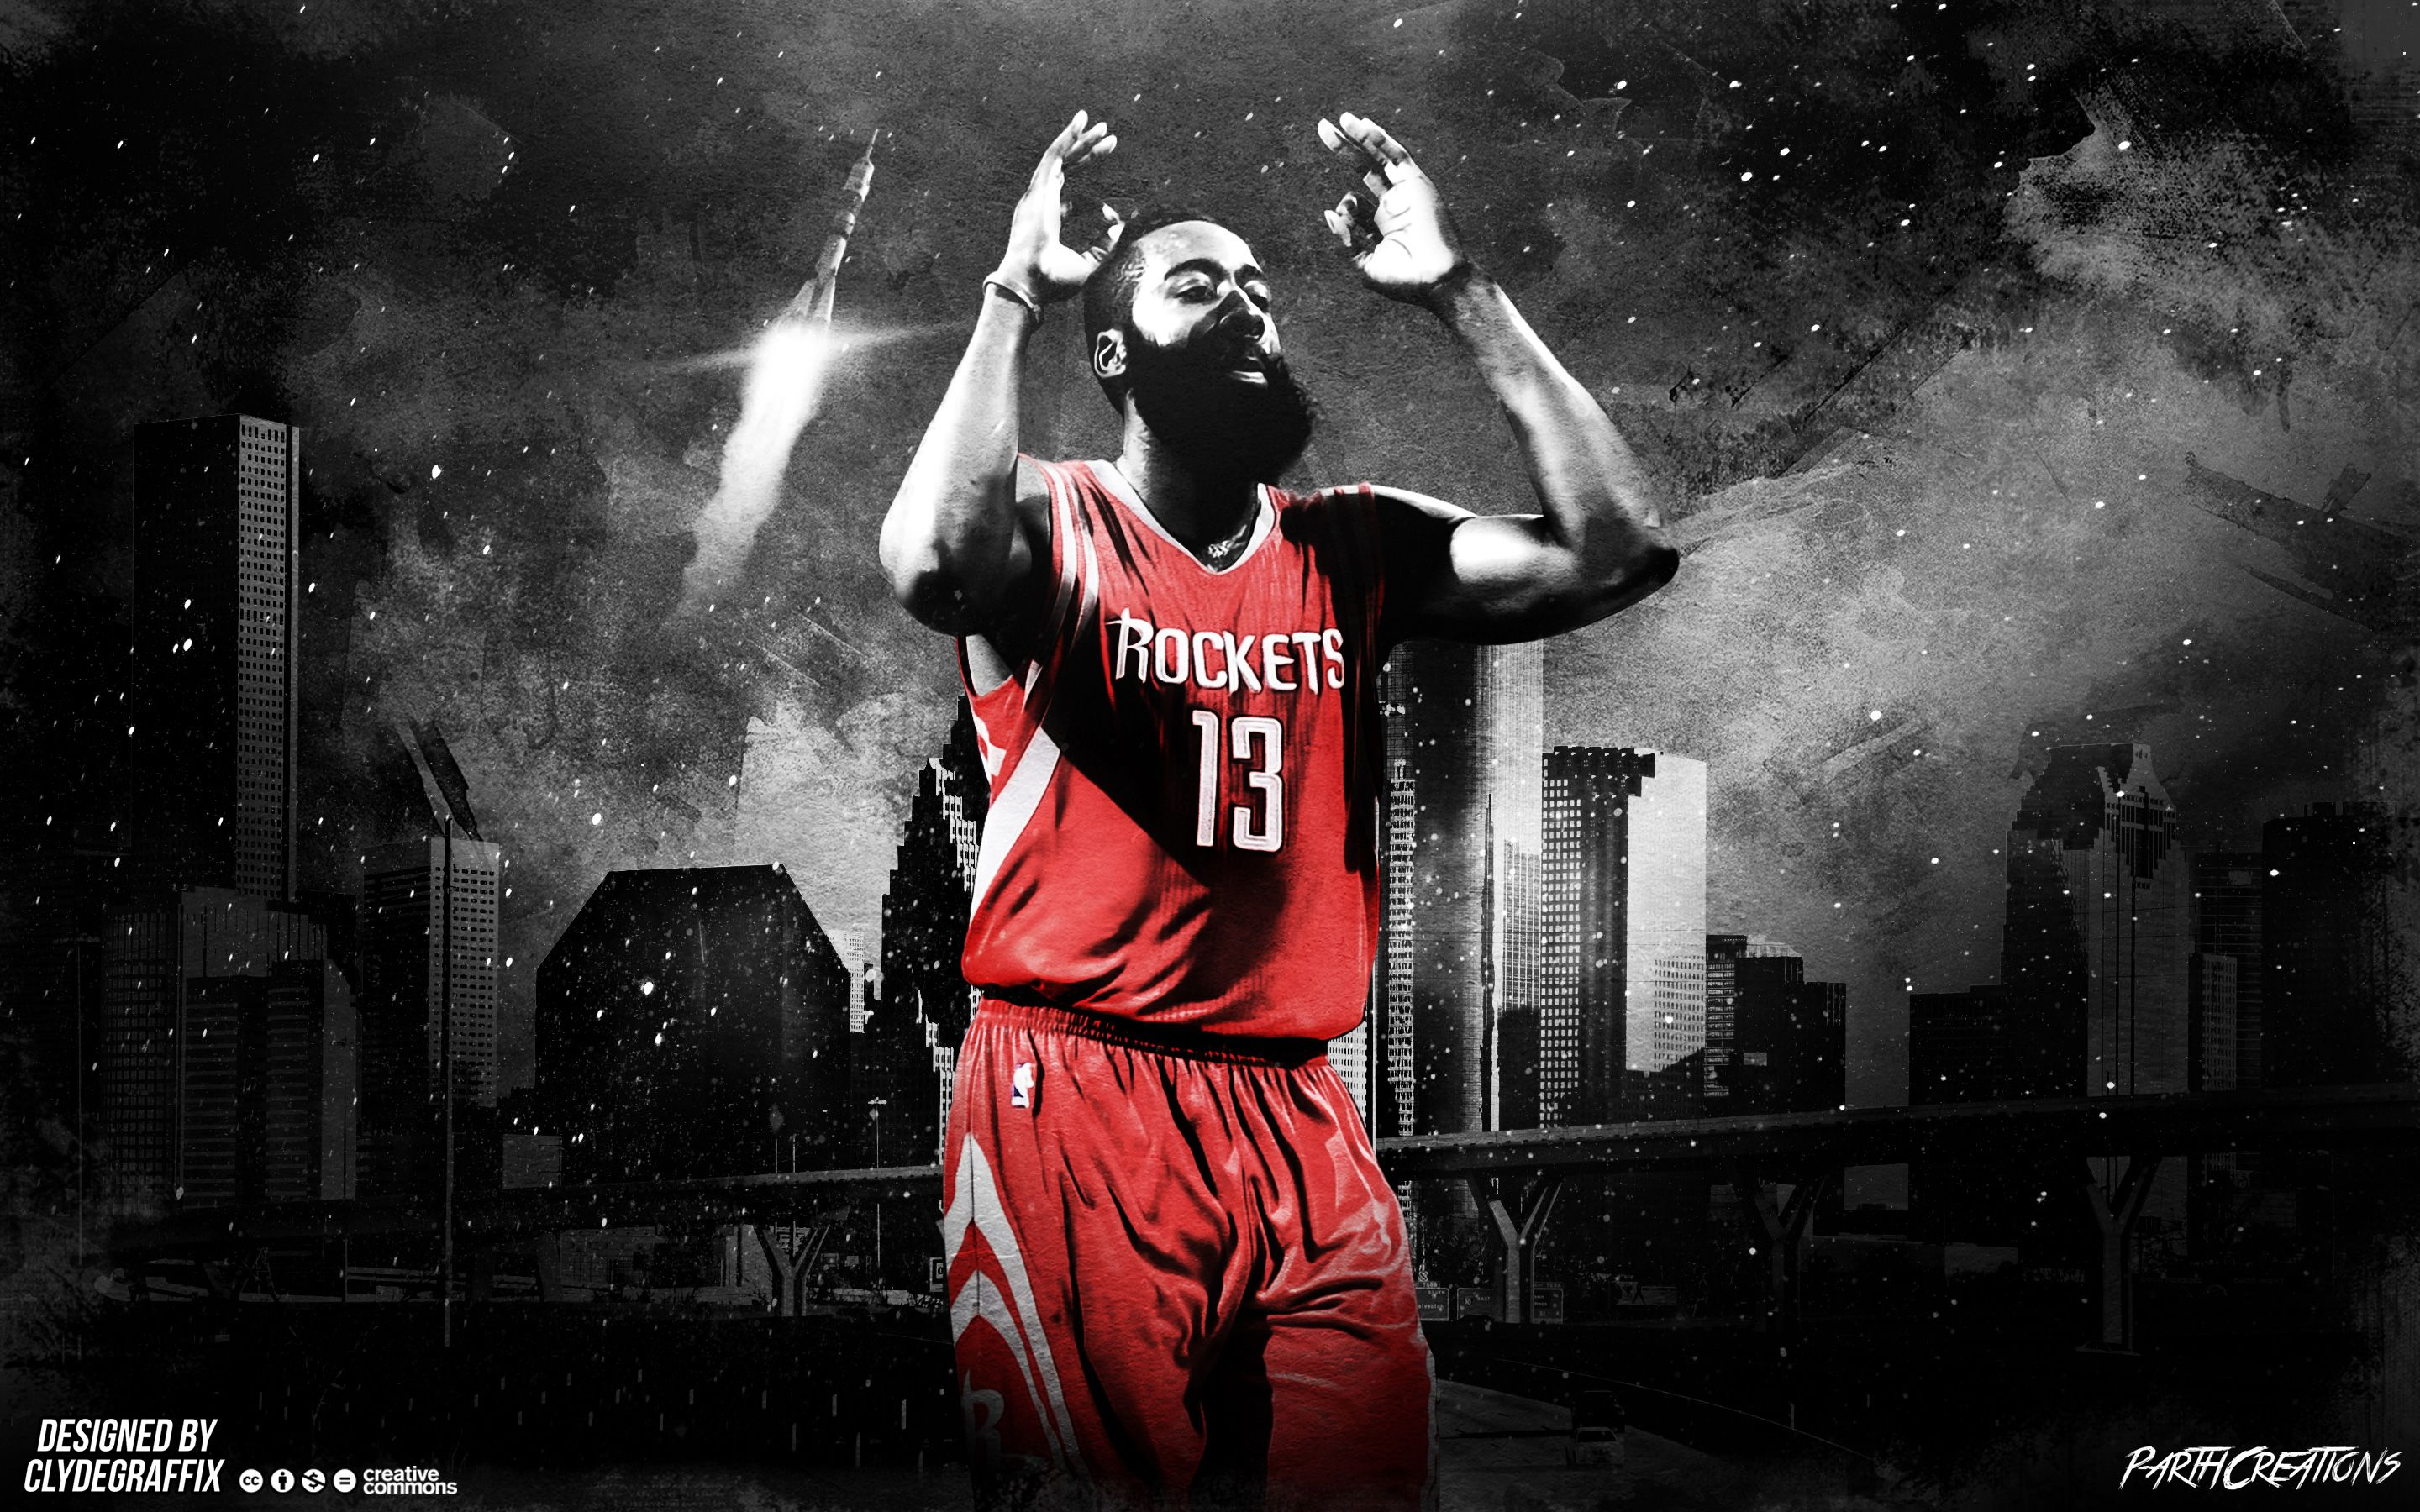 James Harden Rockets 2015 2880 1800 Wallpaper James Harden Houston Rockets Basketball Highlights